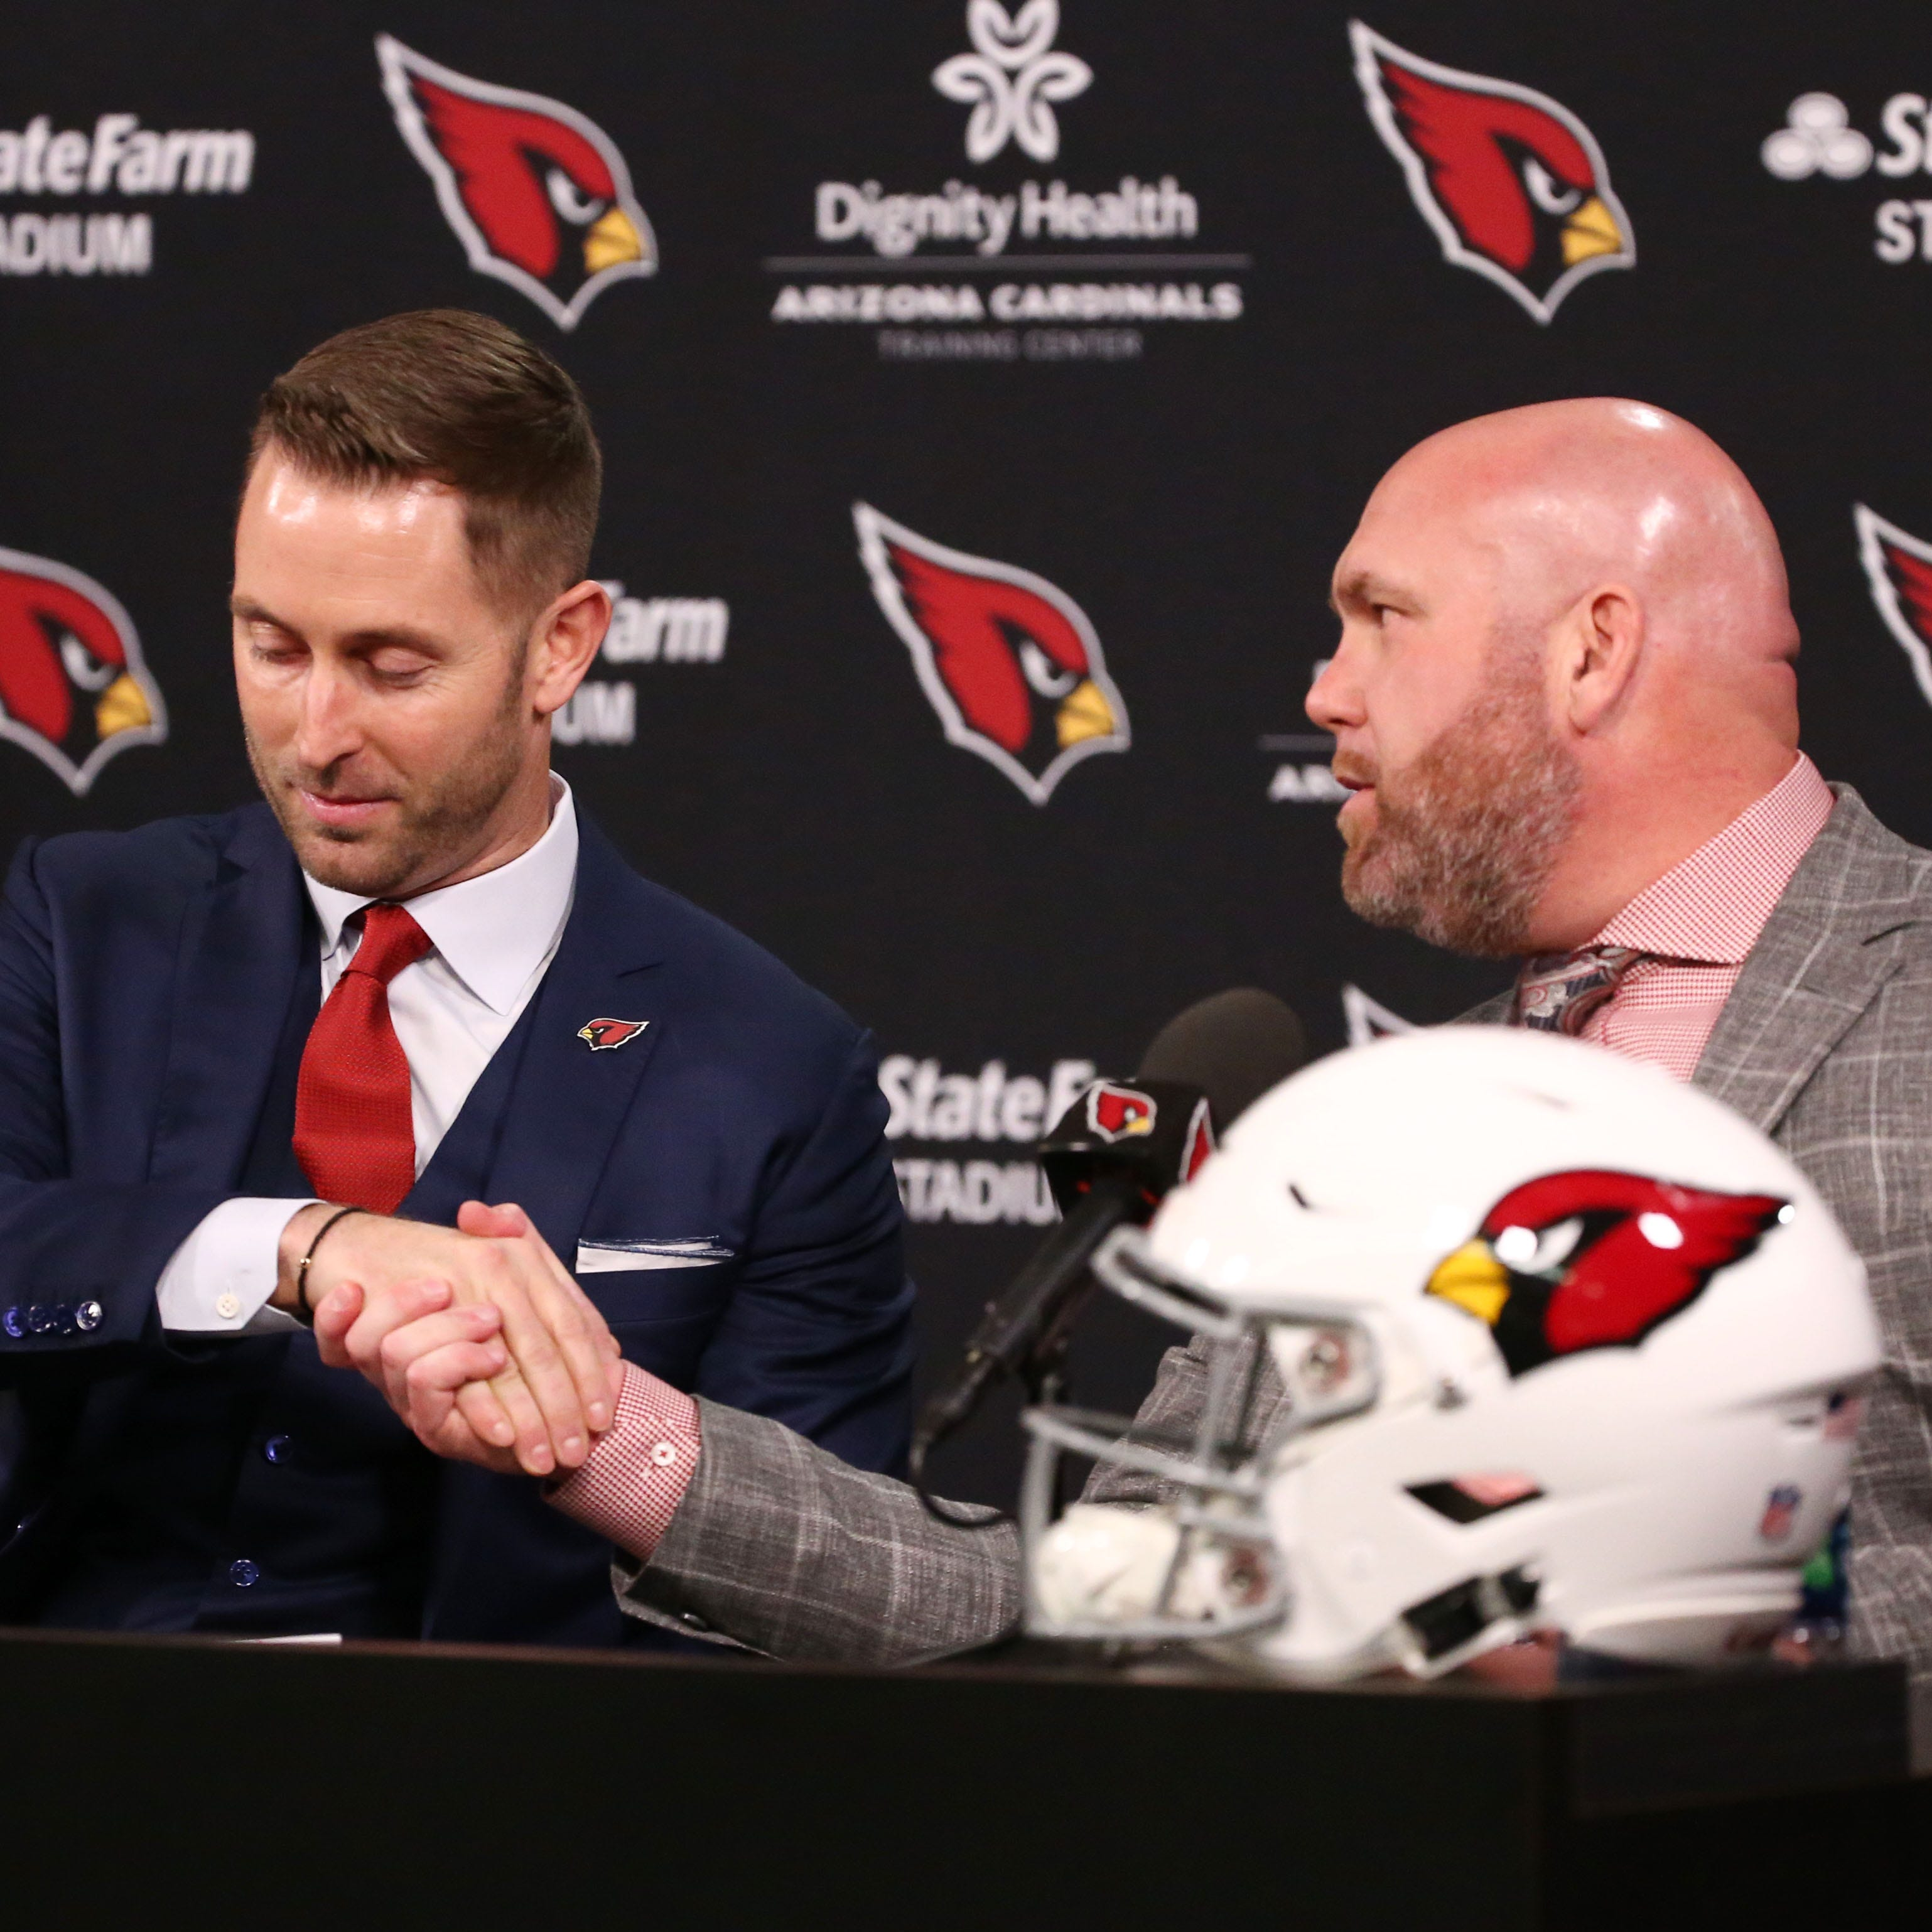 Cardinals' staff solid so far under Kliff Kingsbury, despite lack of offensive coordinator